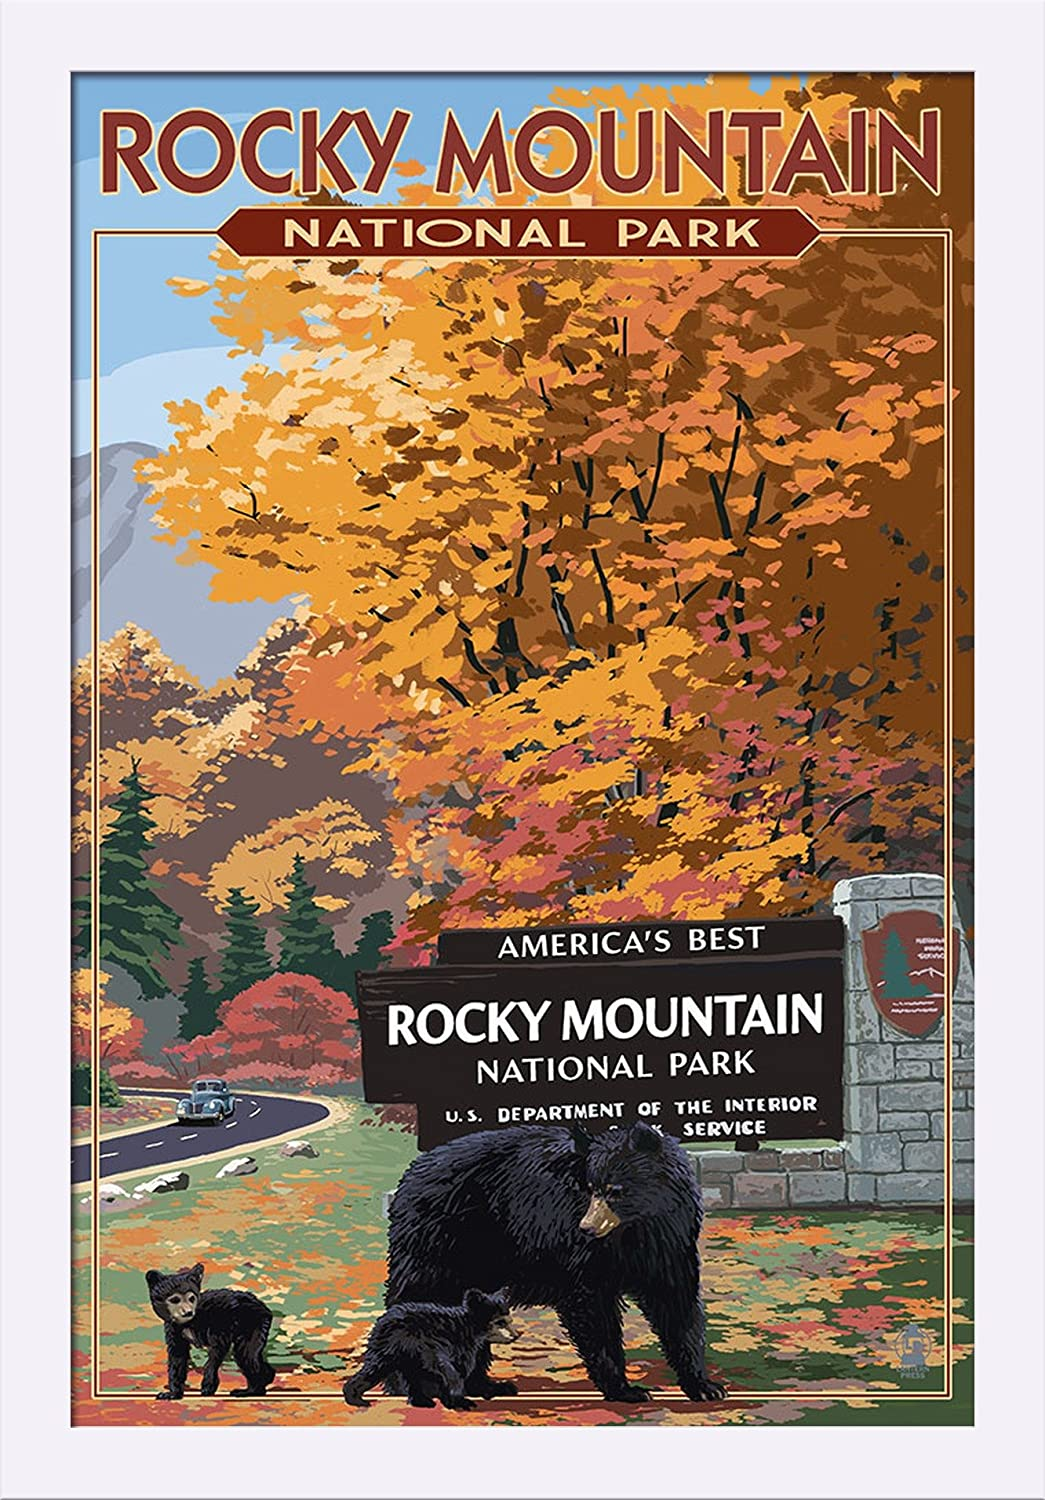 Rocky Mountain National Park Black Bear and Cubs at Entrance 24x36 Giclee Art Print, Gallery Framed, Espresso Wood